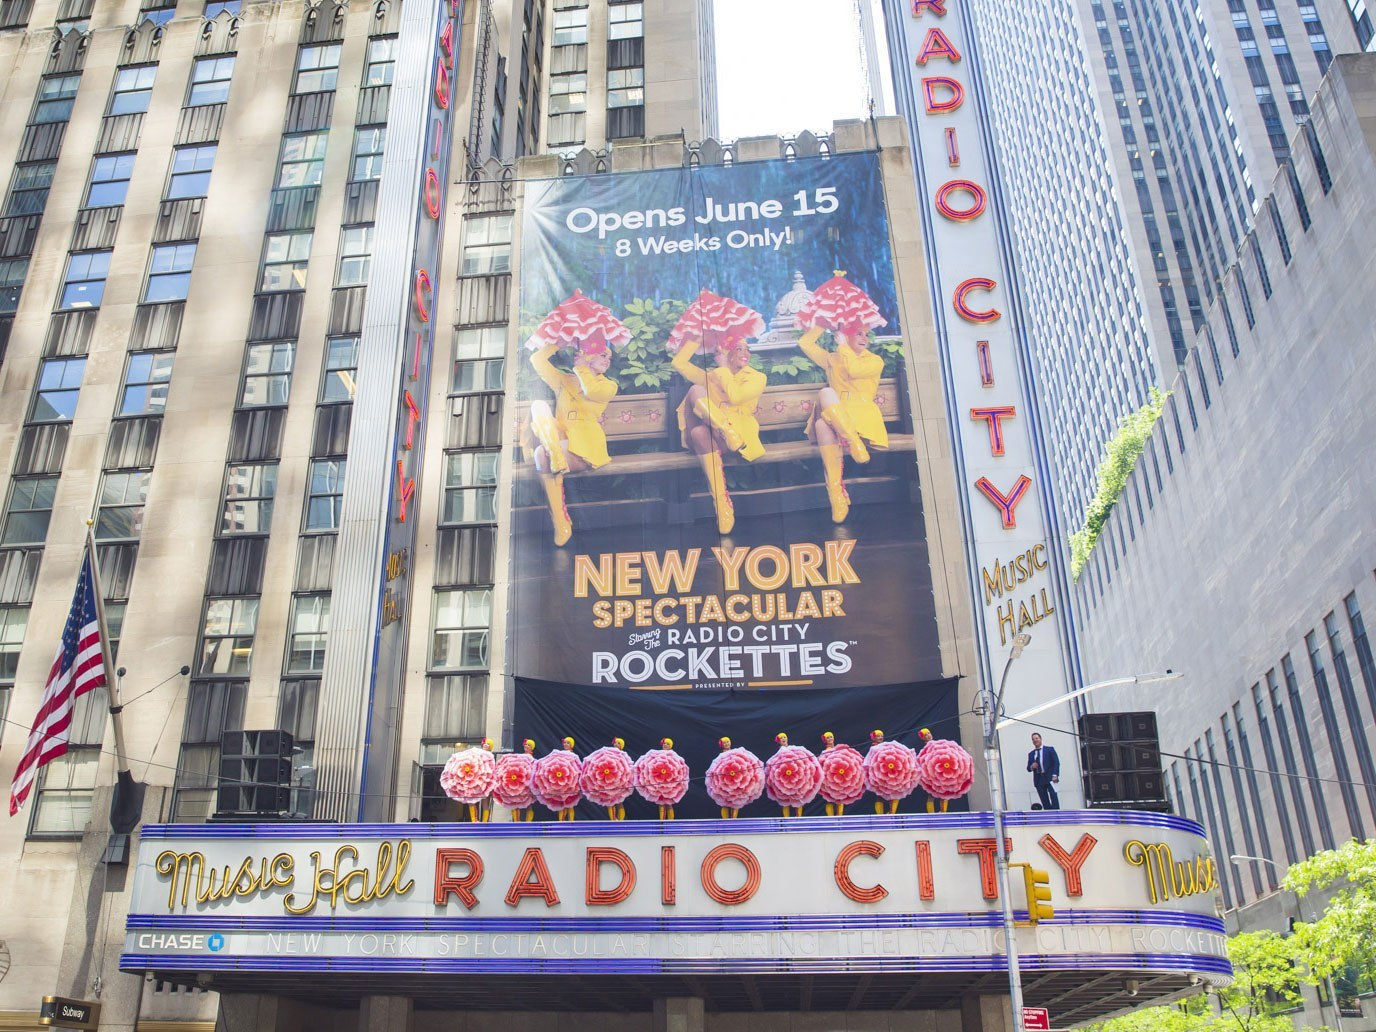 Rockettes stand atop the Radio City Music Hall marquee